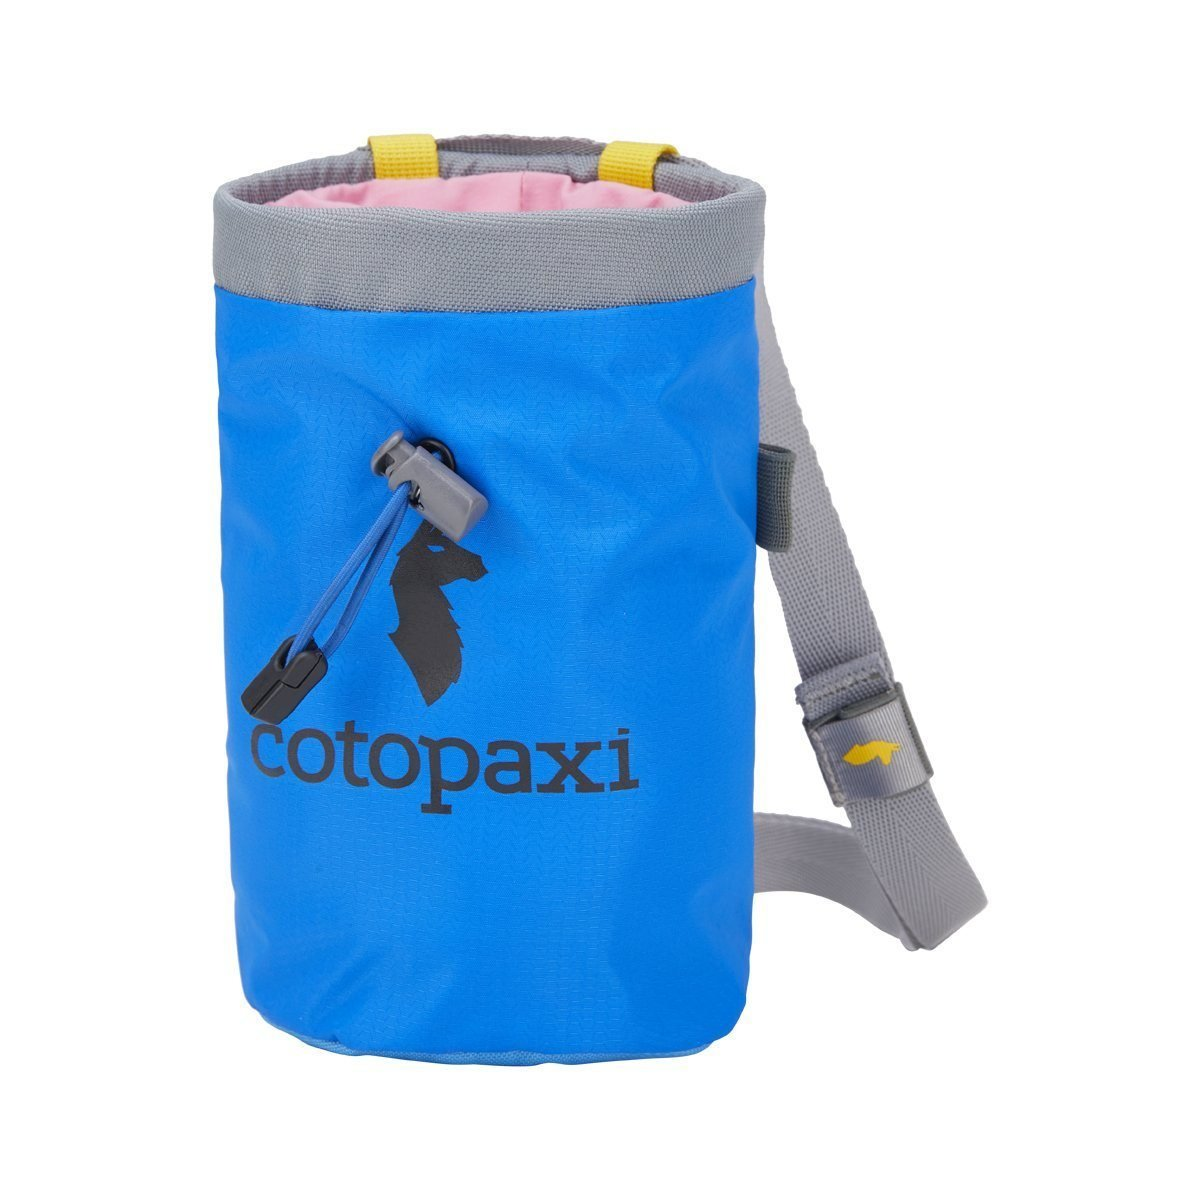 HALCON CHALK BAG - COTOPAXI